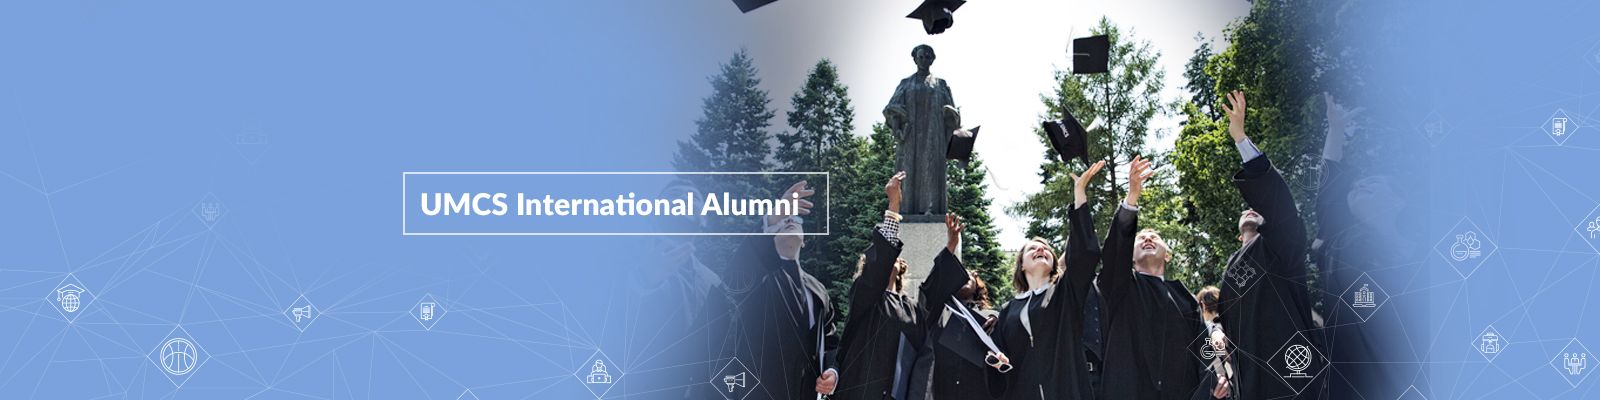 UMCS International Alumni